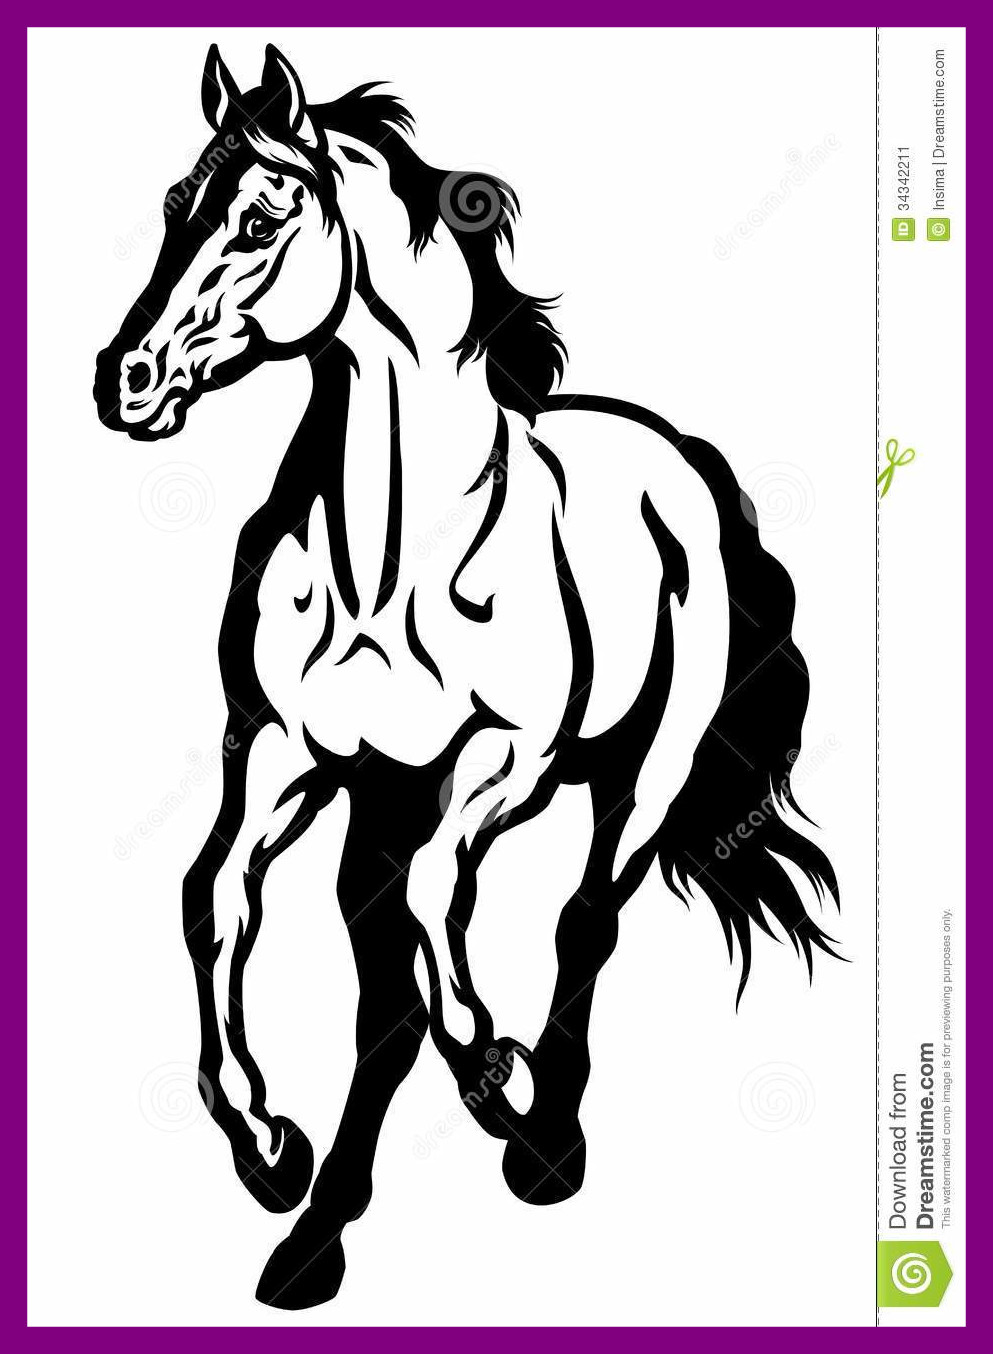 993x1354 Unbelievable Black And White Horse Running Front View Image